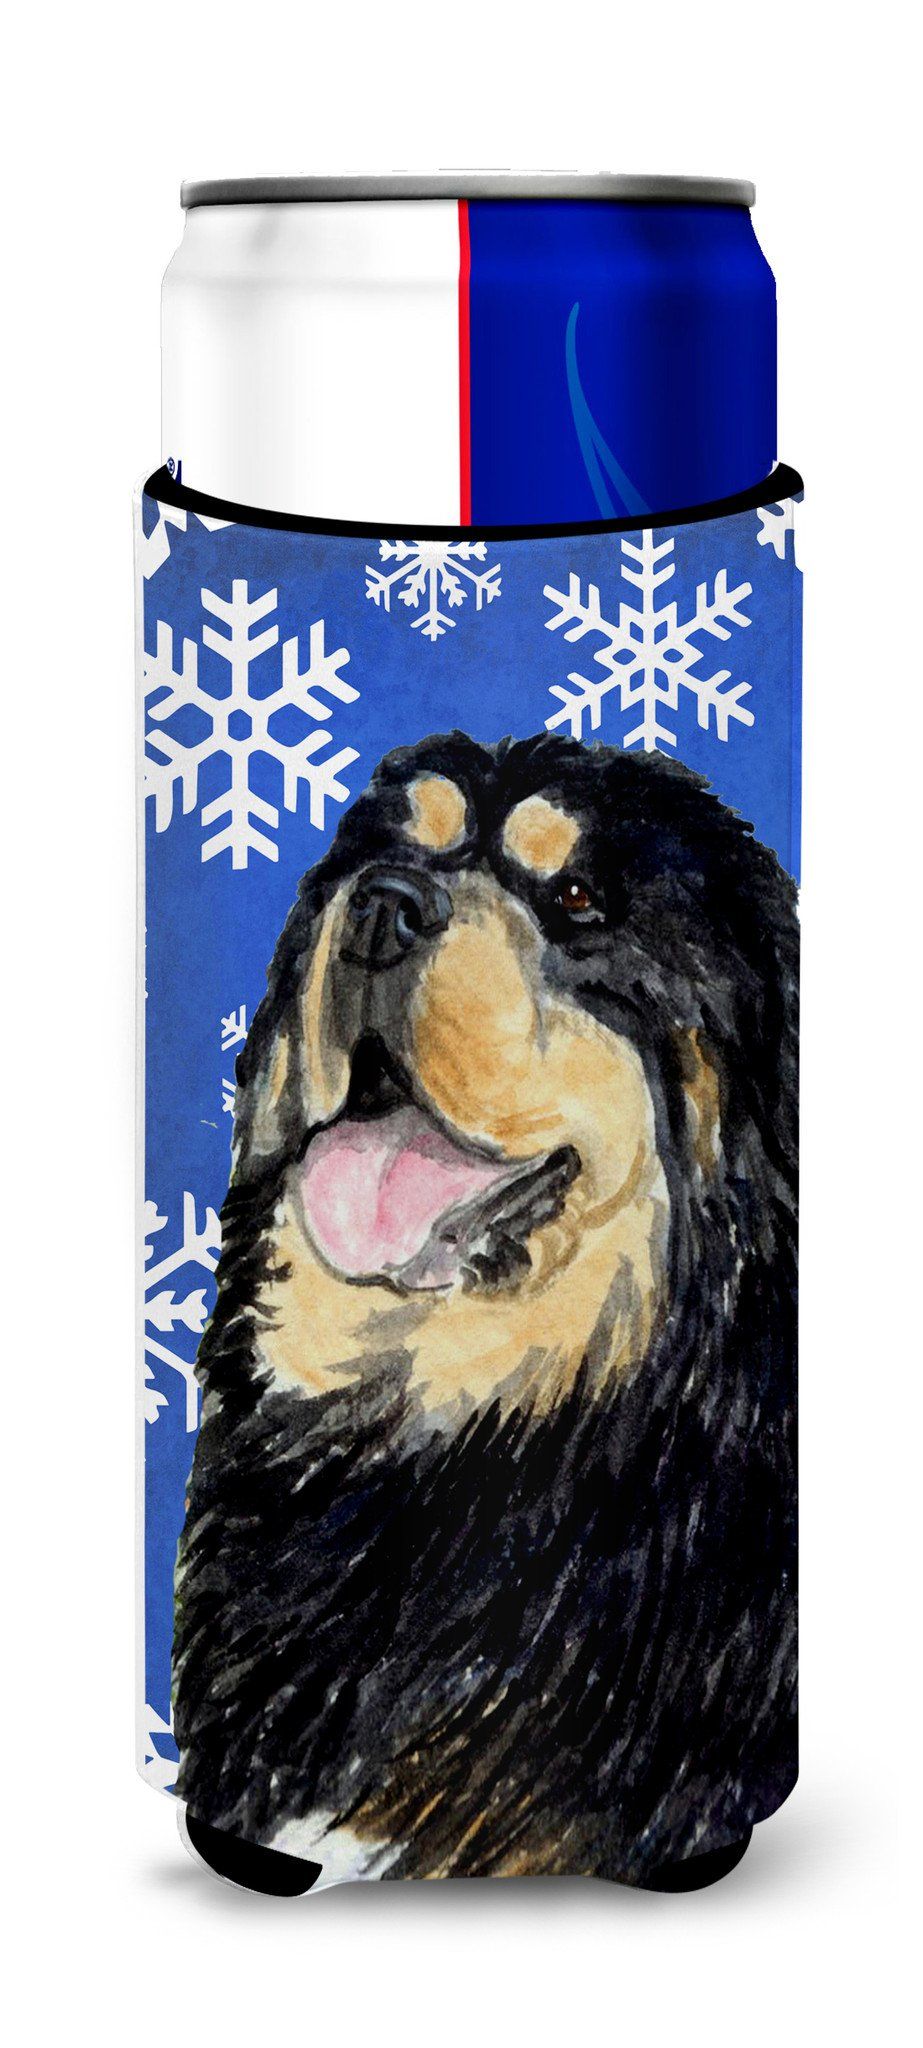 Tibetan Mastiff Winter Snowflakes Holiday Ultra Beverage Insulators for slim cans SS4650MUK by Caroline's Treasures